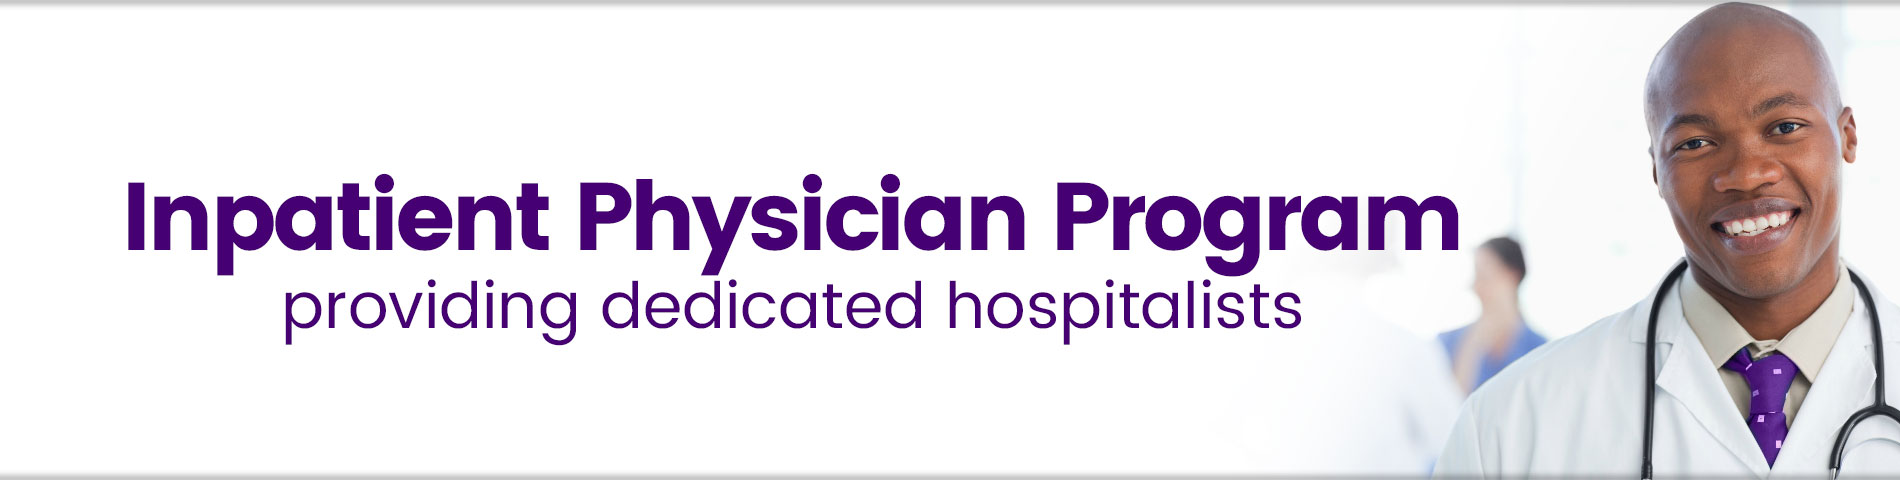 Inpatient Physician Program